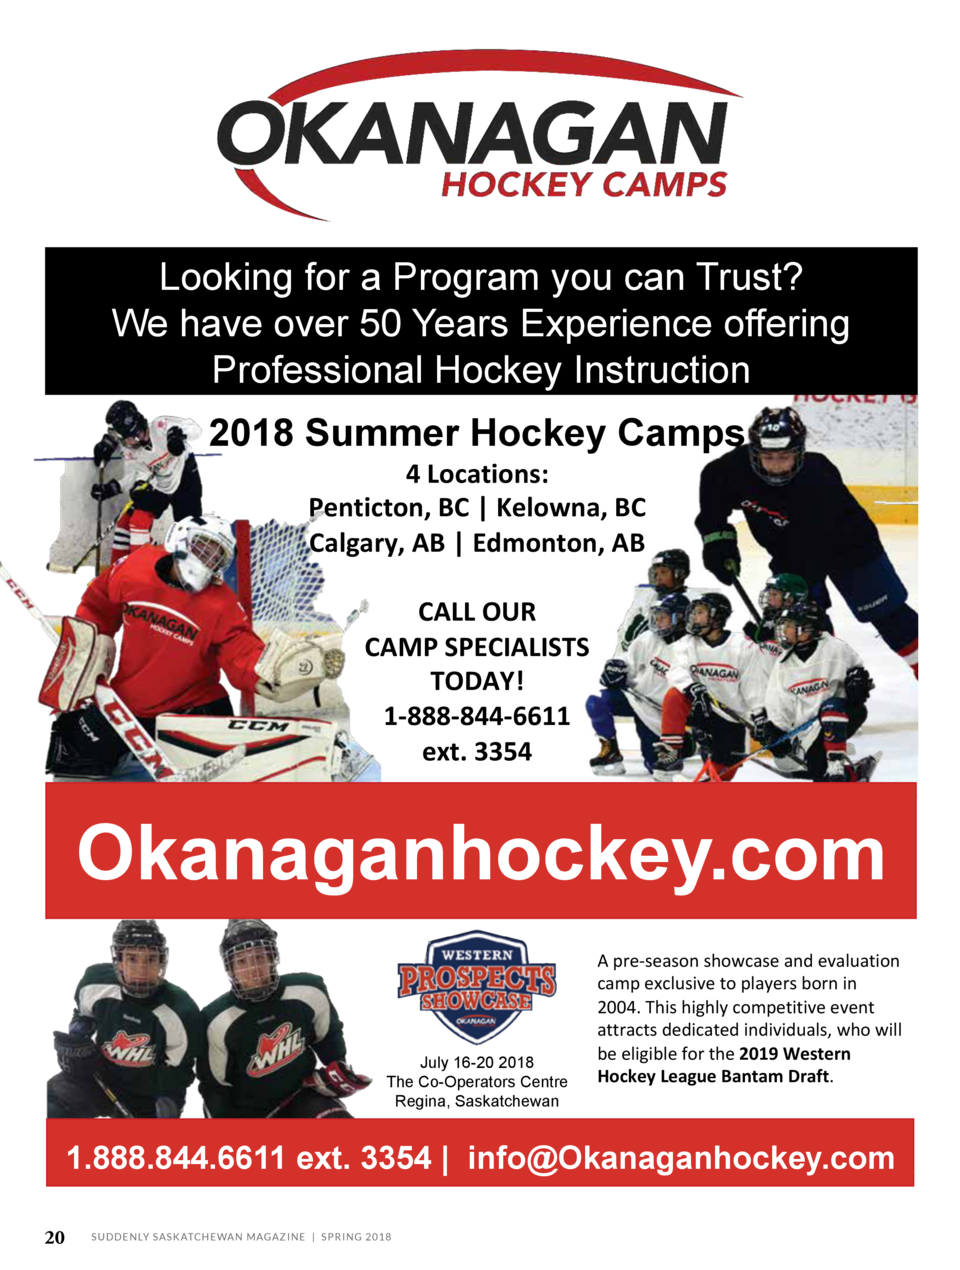 Come-n-go Laser Tag  Looking for a Program you can Trust  We have over 50 Years Experience offering Professional Hockey In...